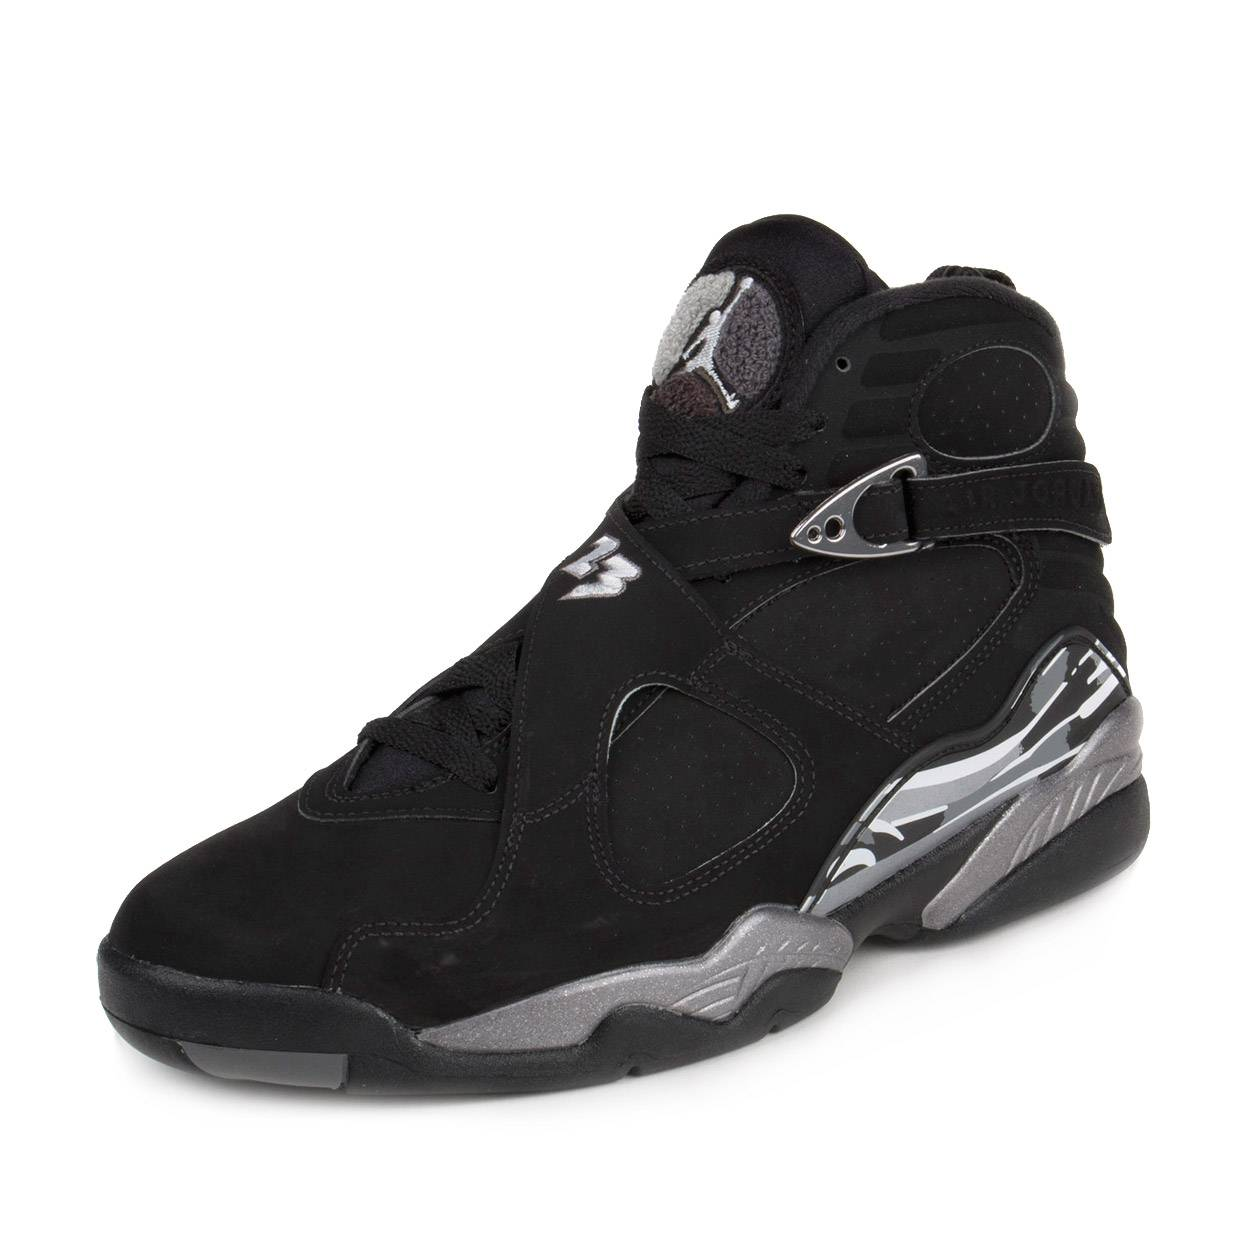 Nike Air Jordan 8 Men\u0026#39;s Leather Athletic Shoes | eBay